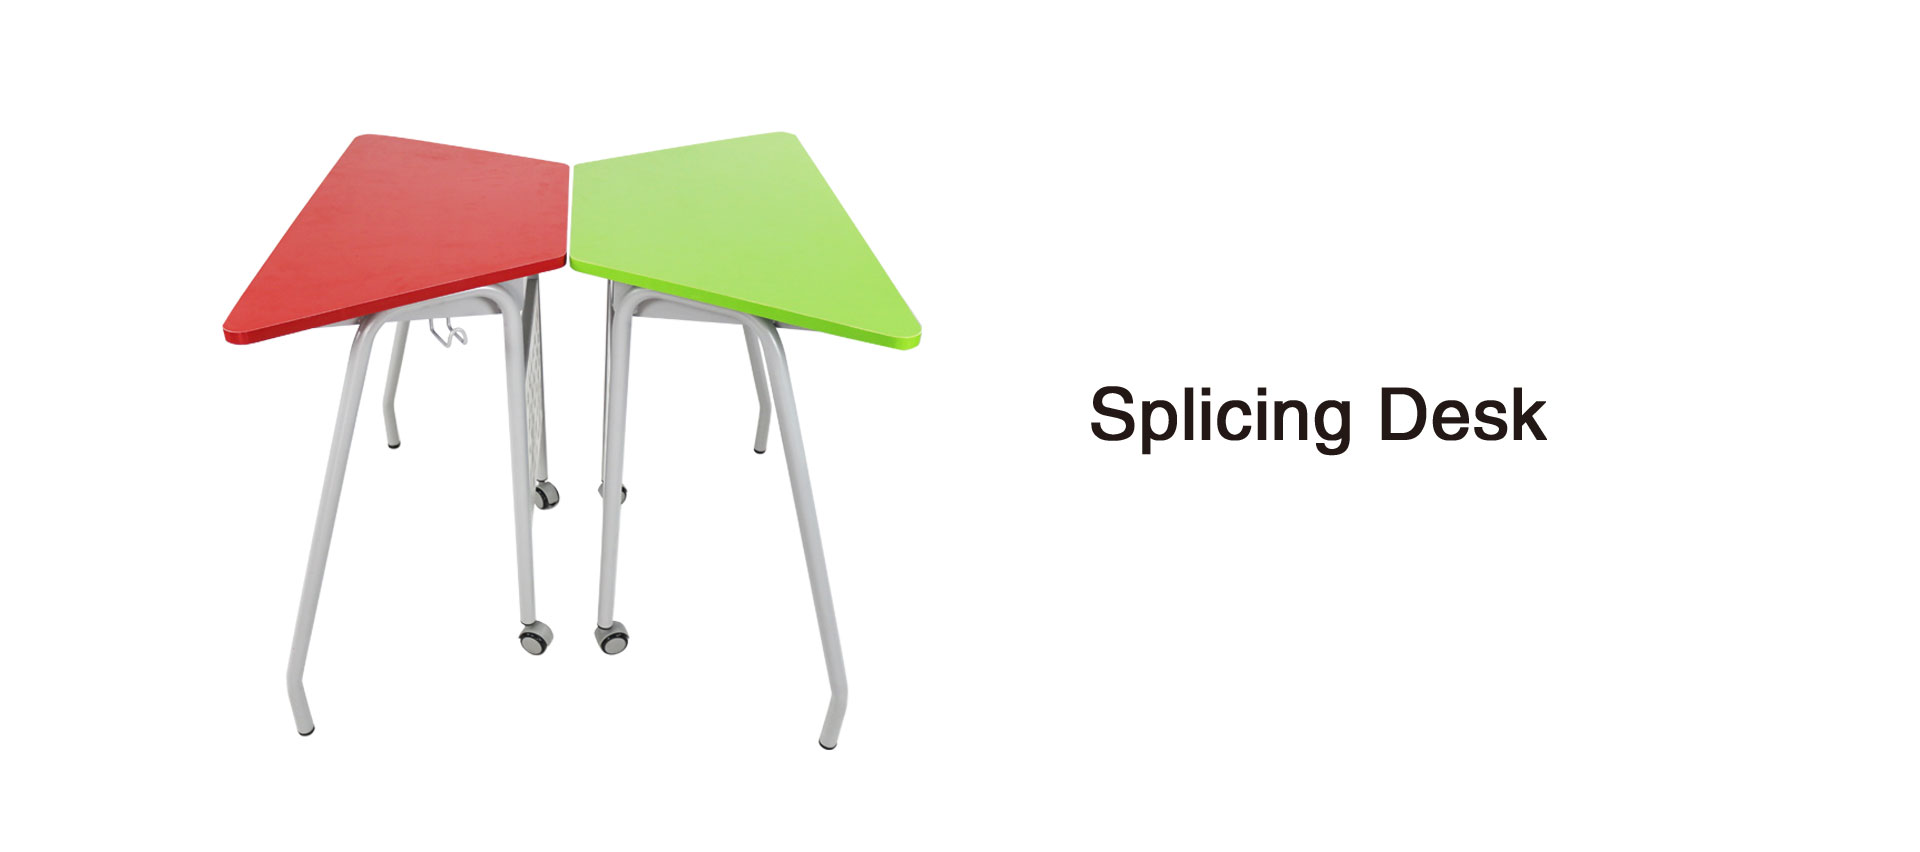 Splicing Desk